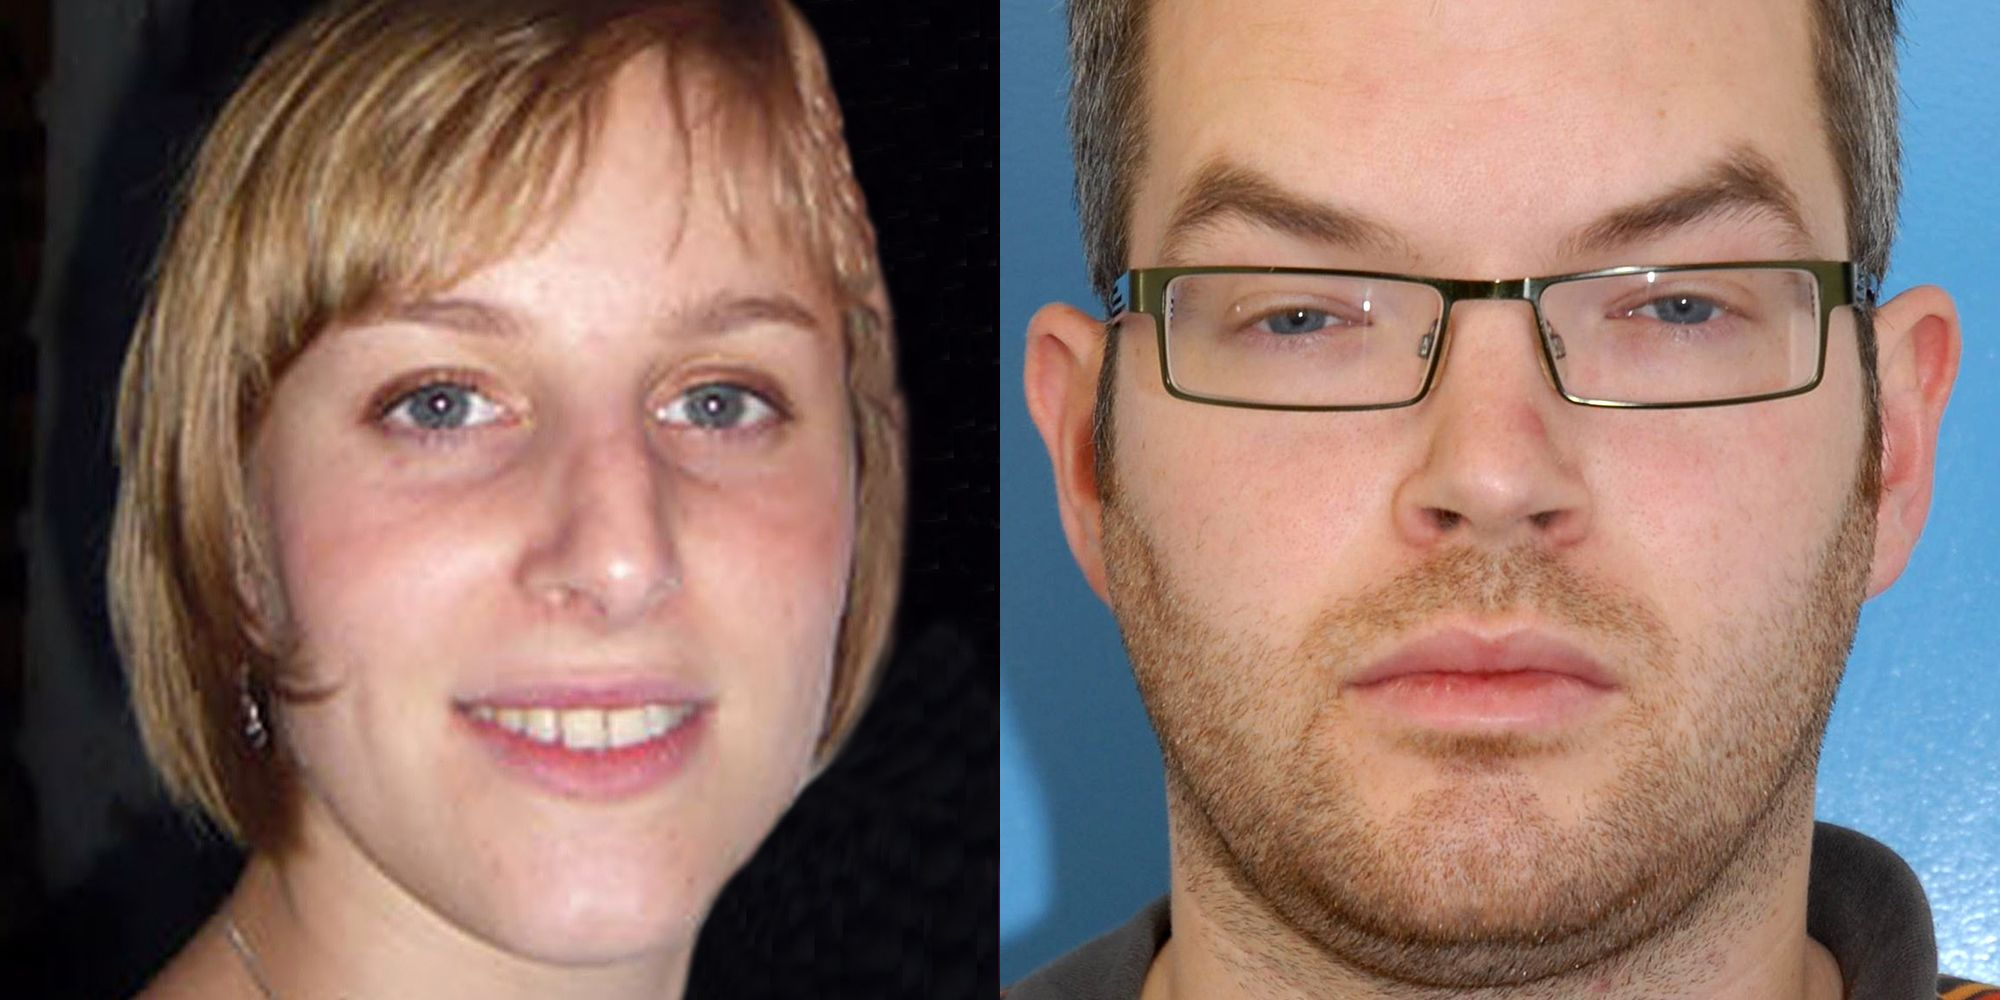 What actually happened to Joanna Yeates, the young woman murdered at Christmas 7 years ago?